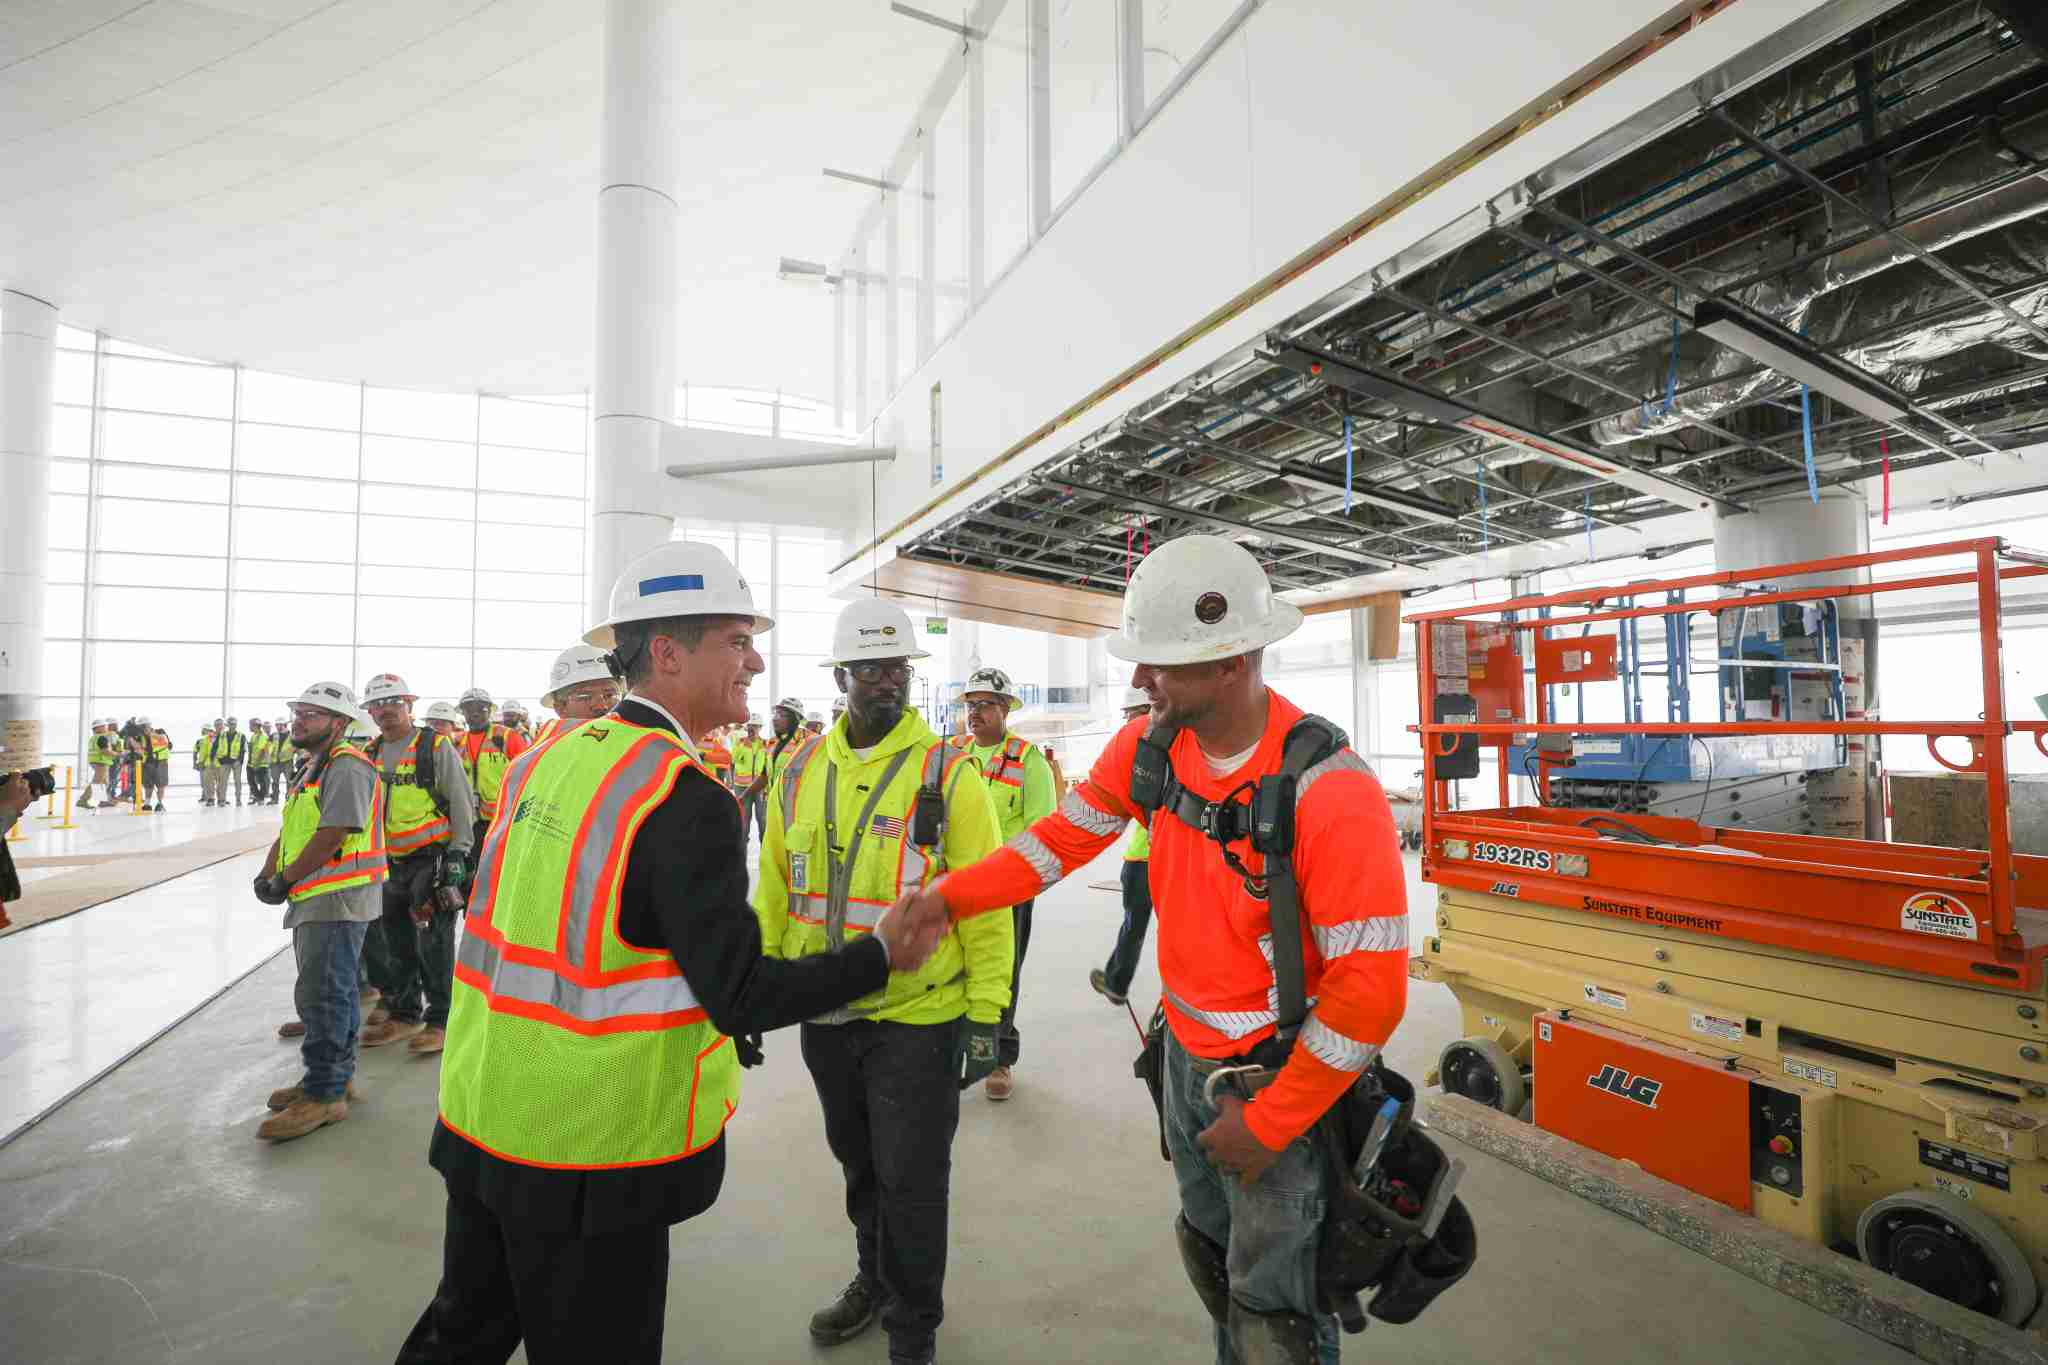 Los Angeles Mayor Eric Garcetti (left) shakes hands with a construction worker during a tour of the under construction Midfield Satellite Concourse at LAX. (Courtesy of the City of Los Angeles)